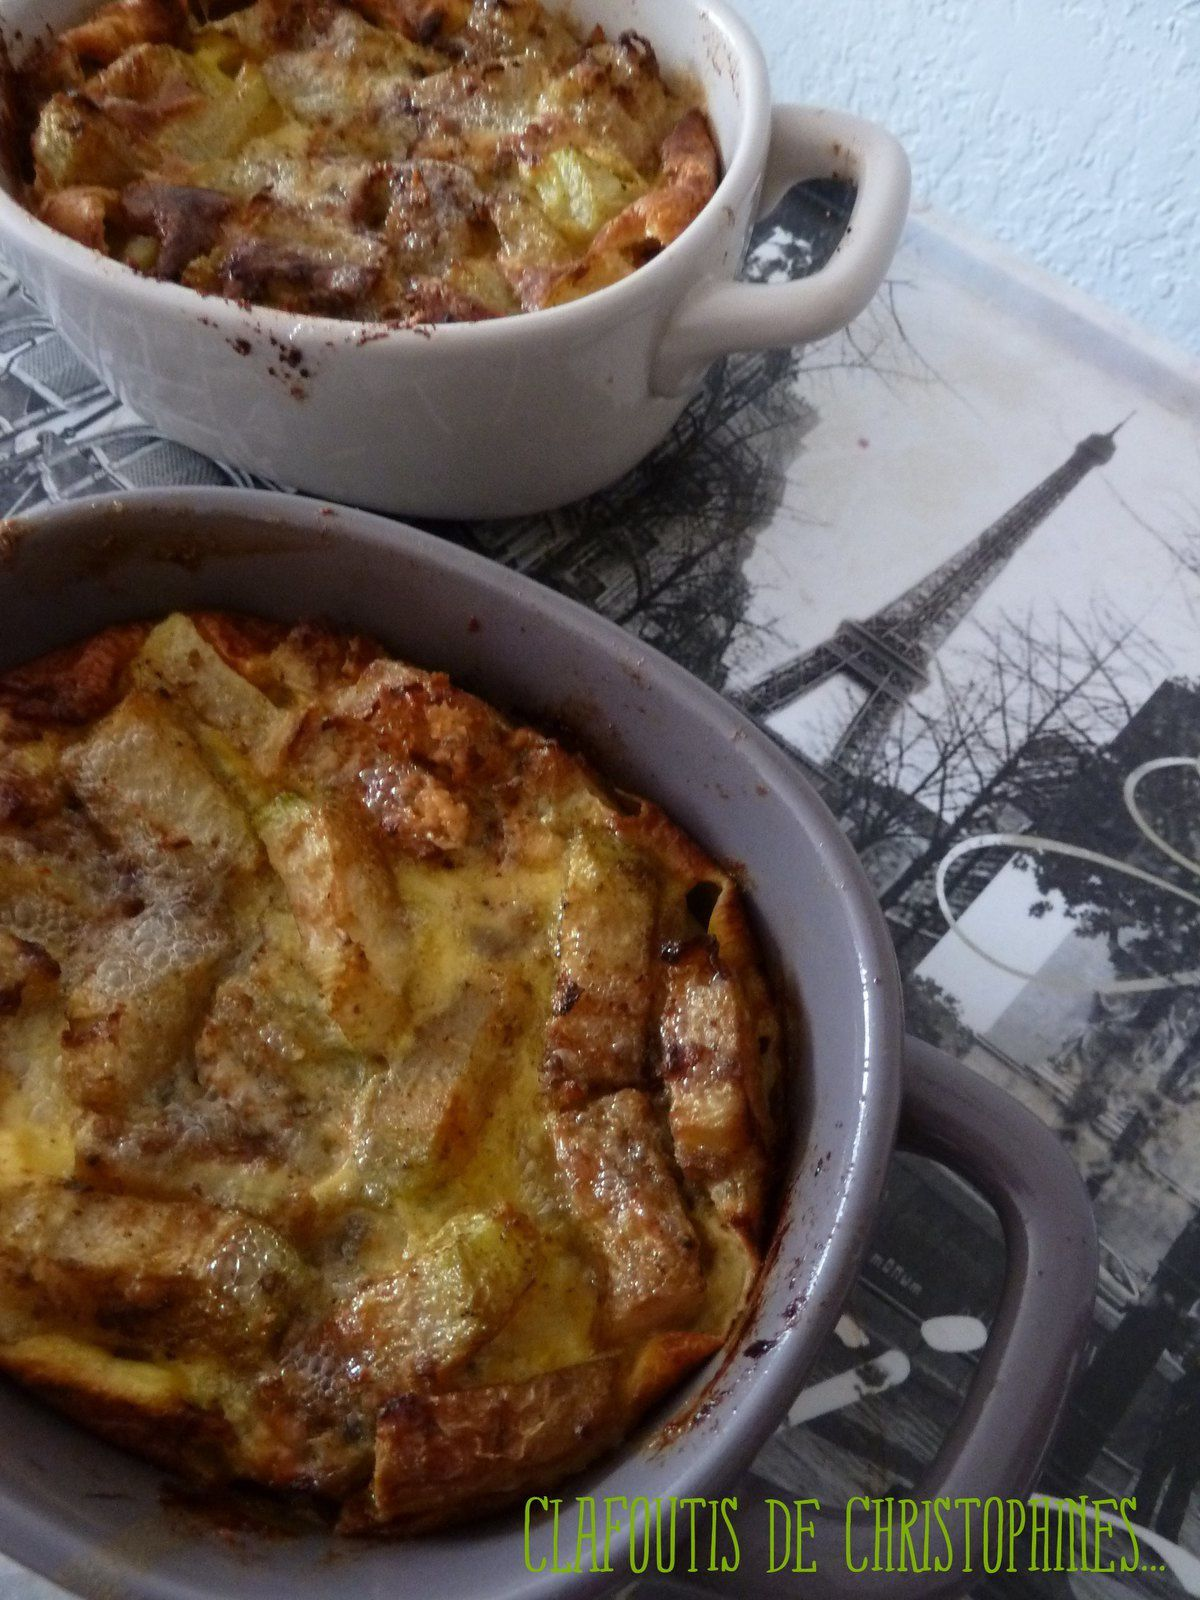 Clafoutis de christophine au curry et au roquefort